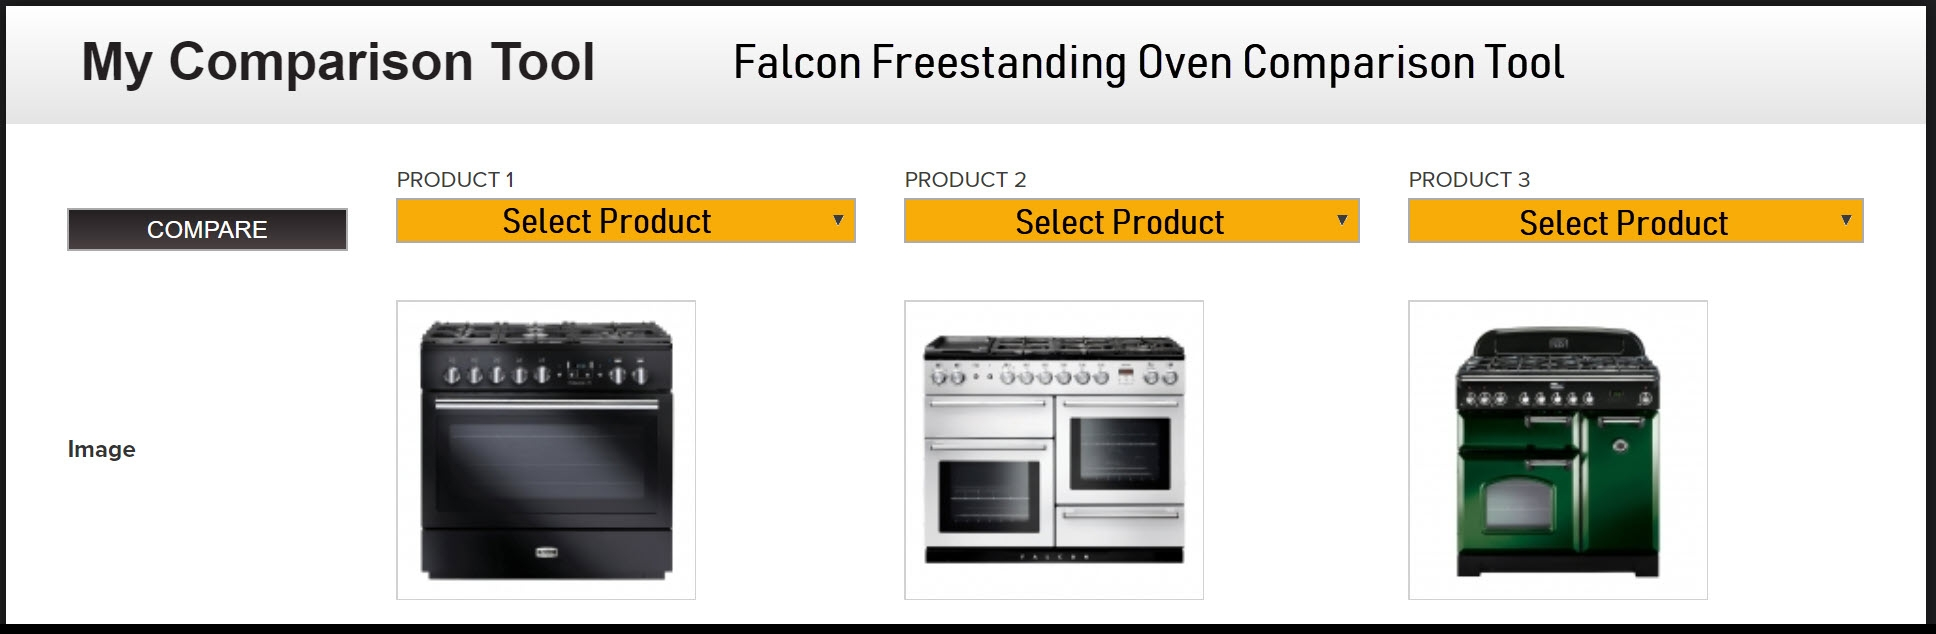 Click HERE to use the Falcon Freestanding Oven Comparison Tool